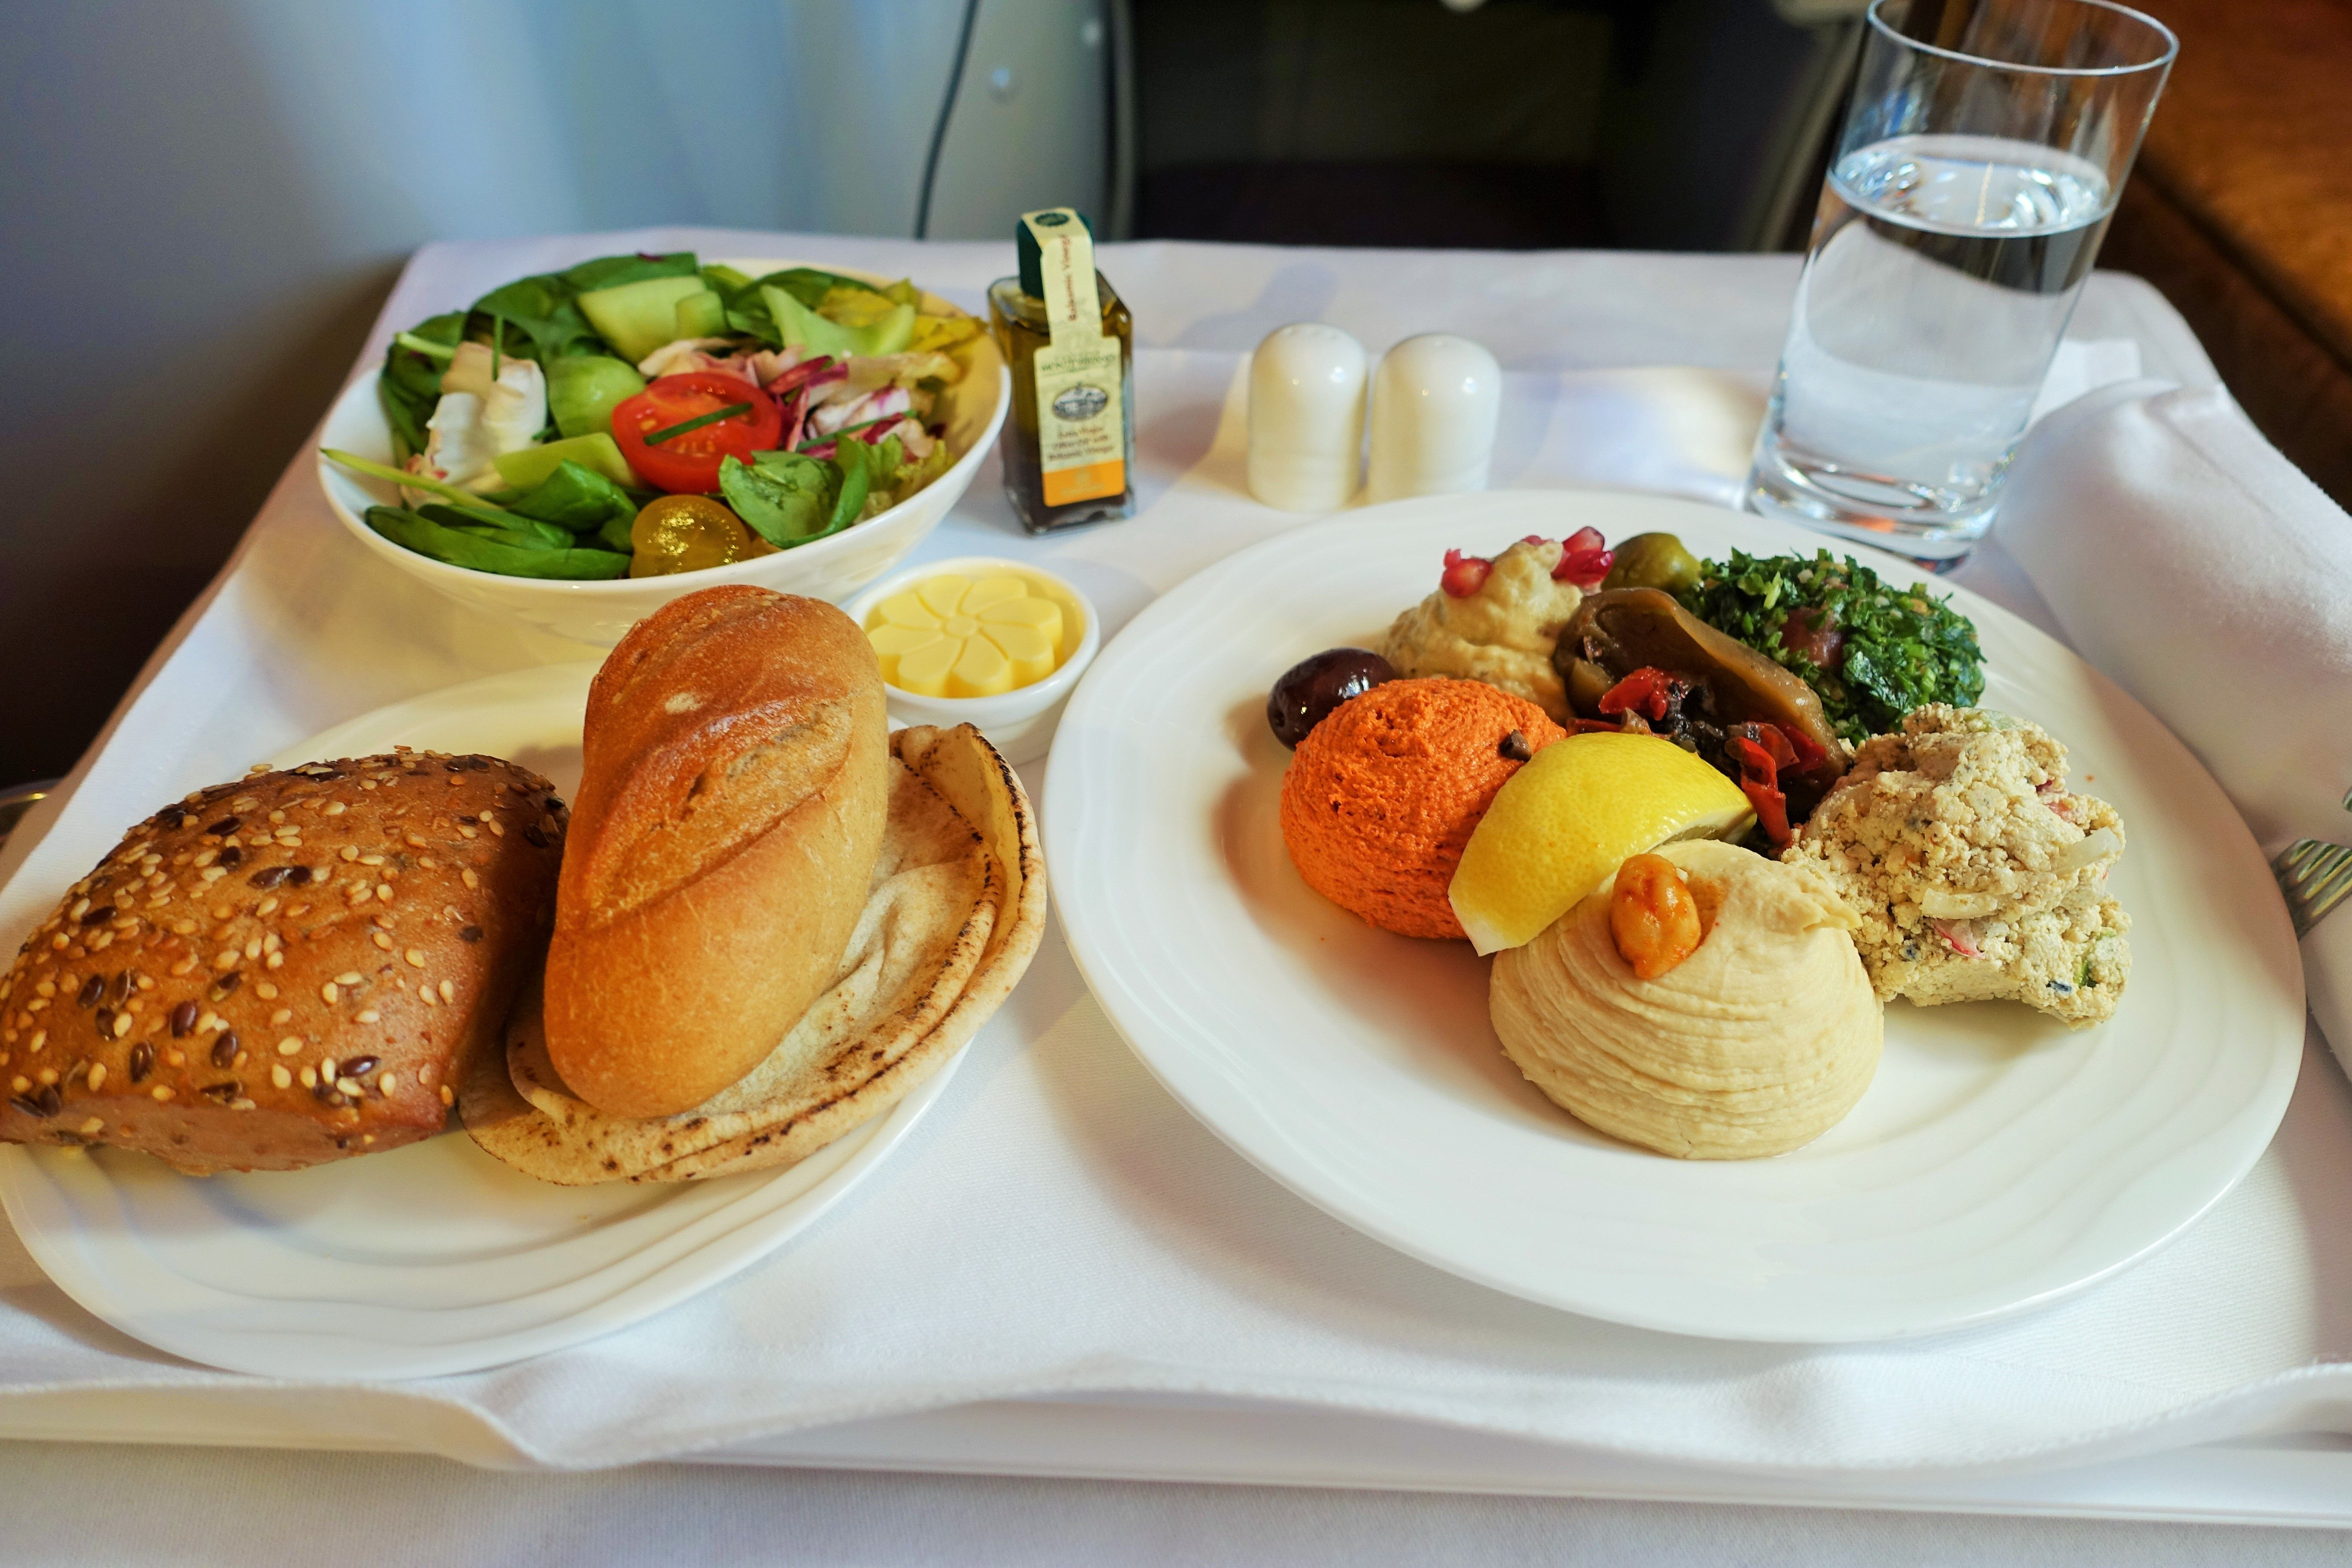 Emirates Business Meal Meze Plate Salad Bread Rolls On Tray A380 Cl Review